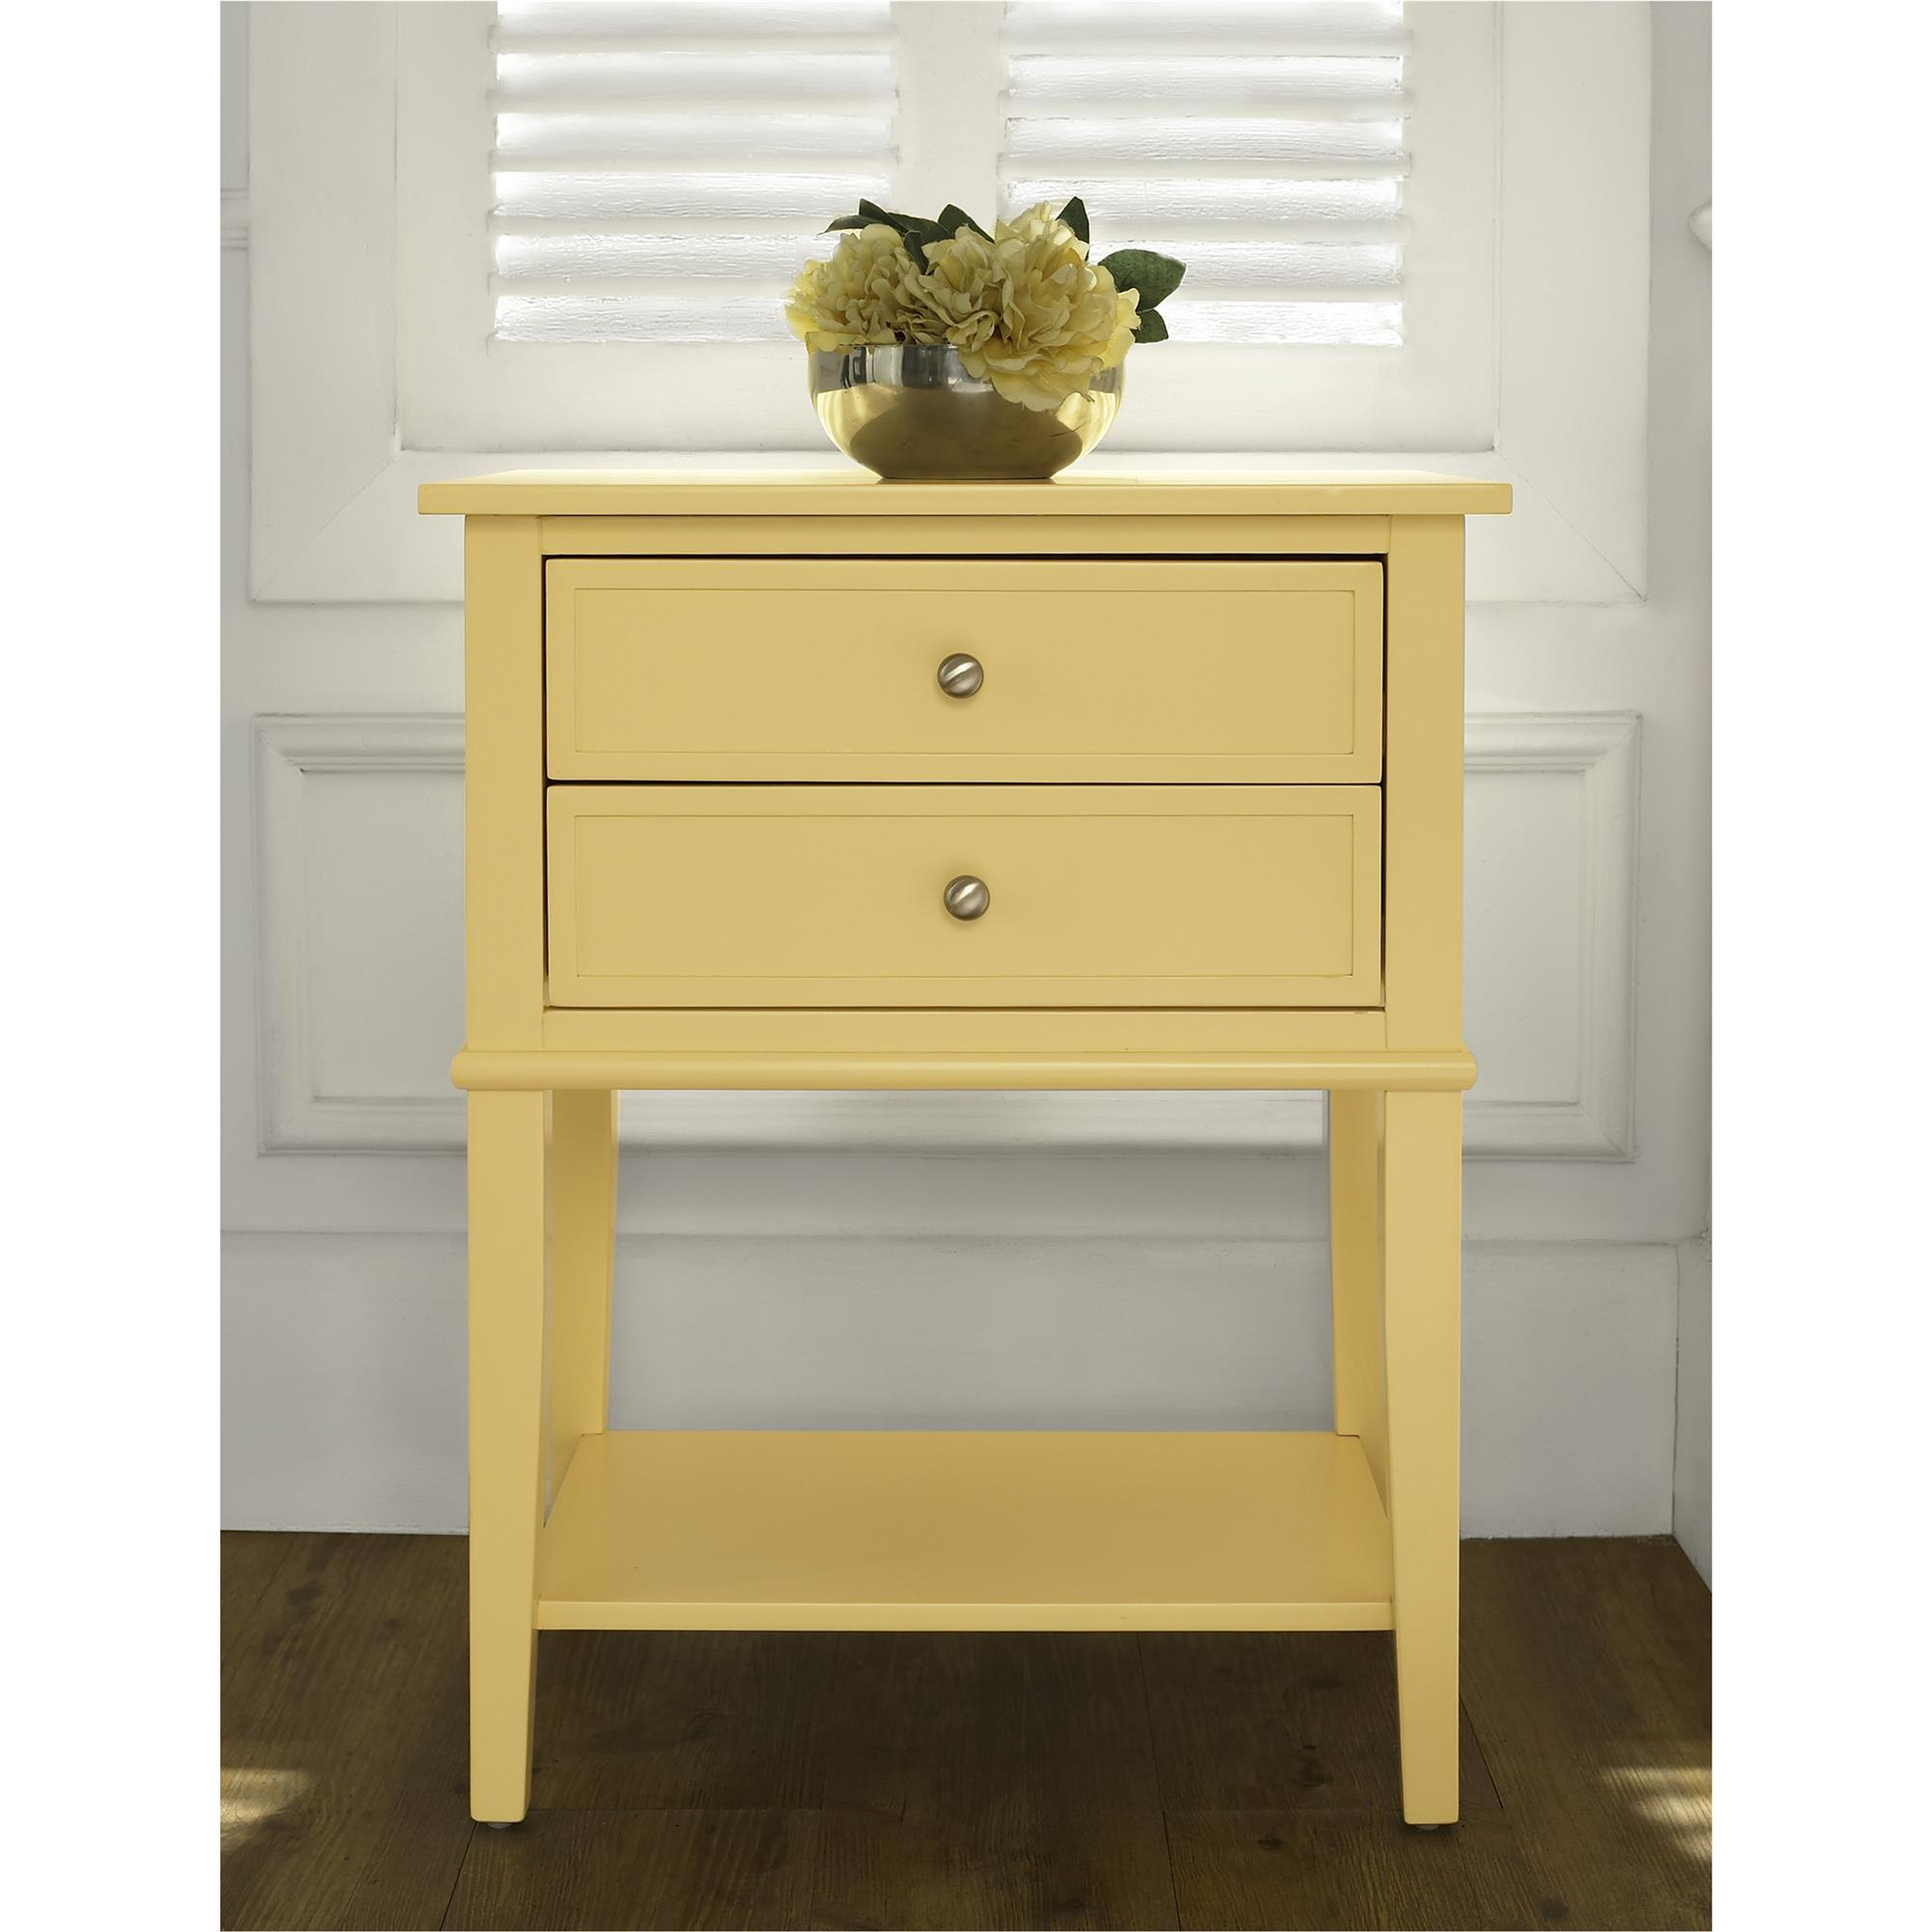 ameriwood furniture franklin accent table with drawers yellow source tipton round oriental floor lamps small apt outdoor bbq bright colored chairs pottery barn industrial coffee